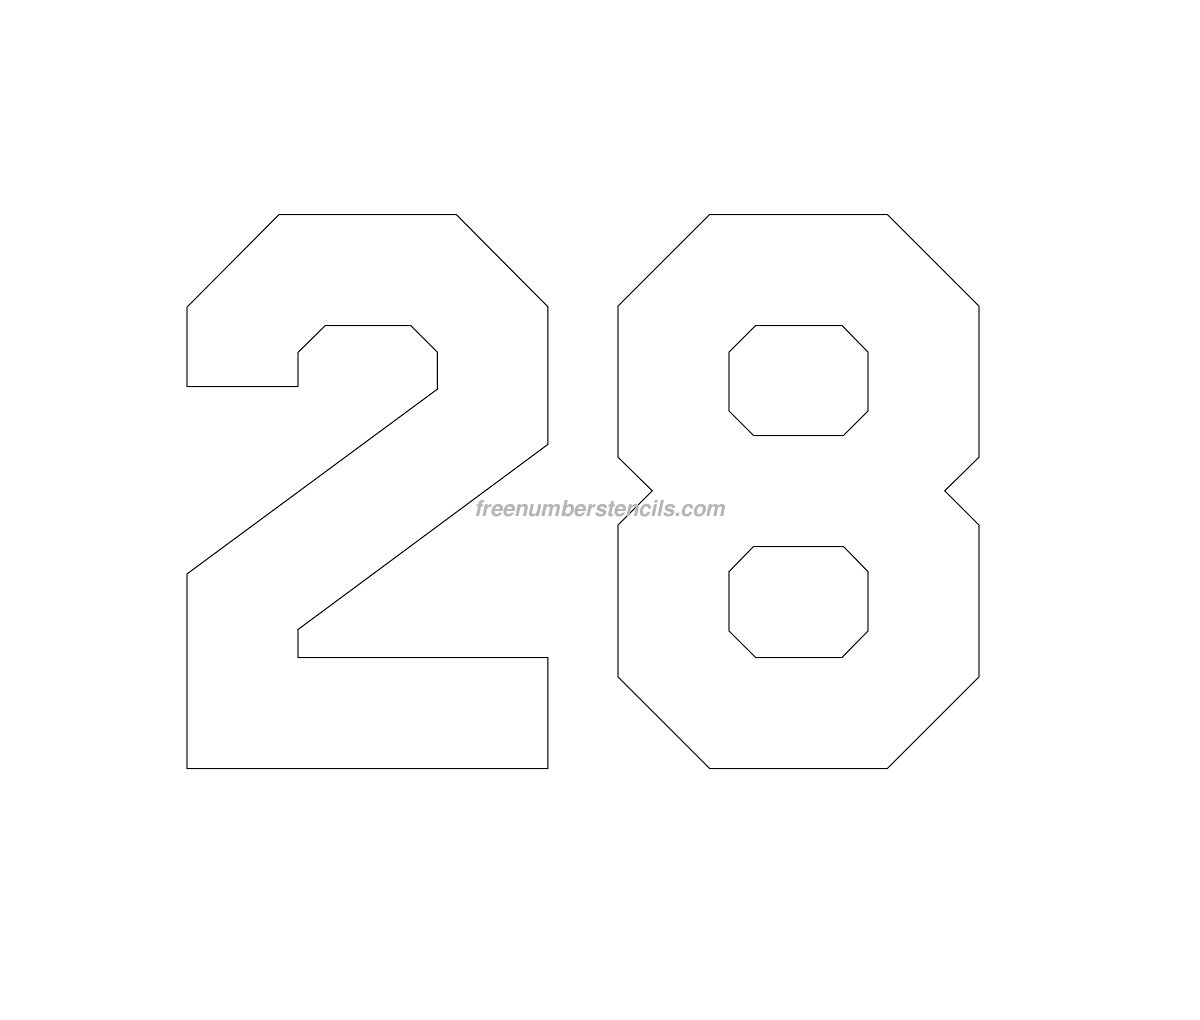 Hockey number stencils archives freenumberstencils free hockey 28 number stencil alramifo Image collections